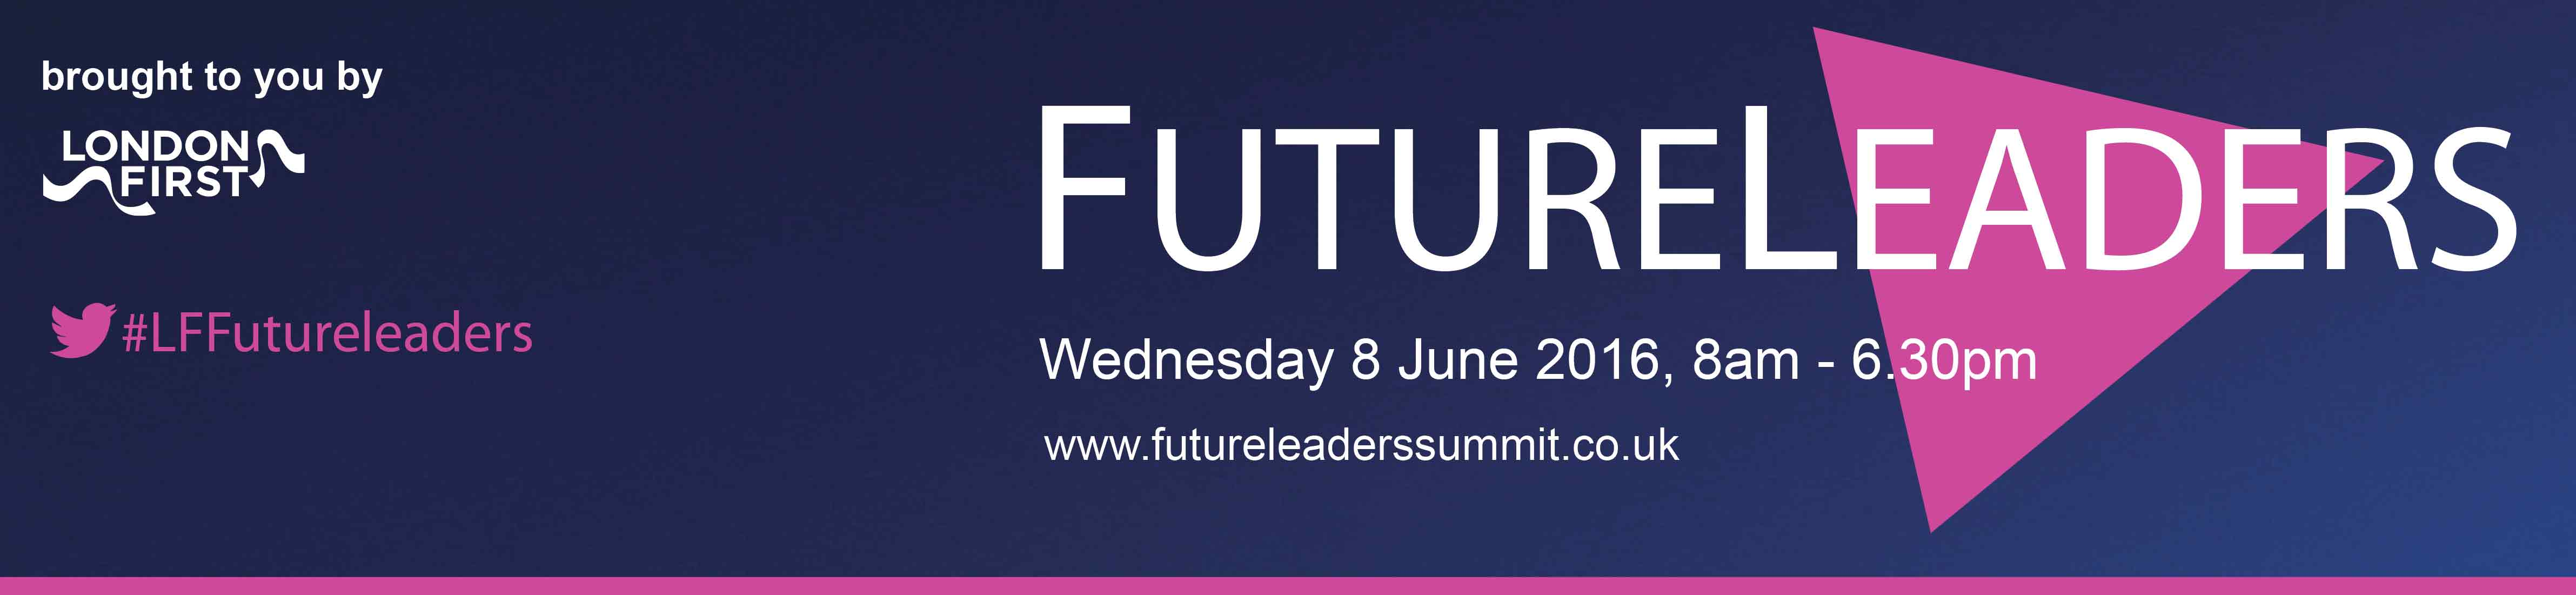 Future Leaders Summit 2015